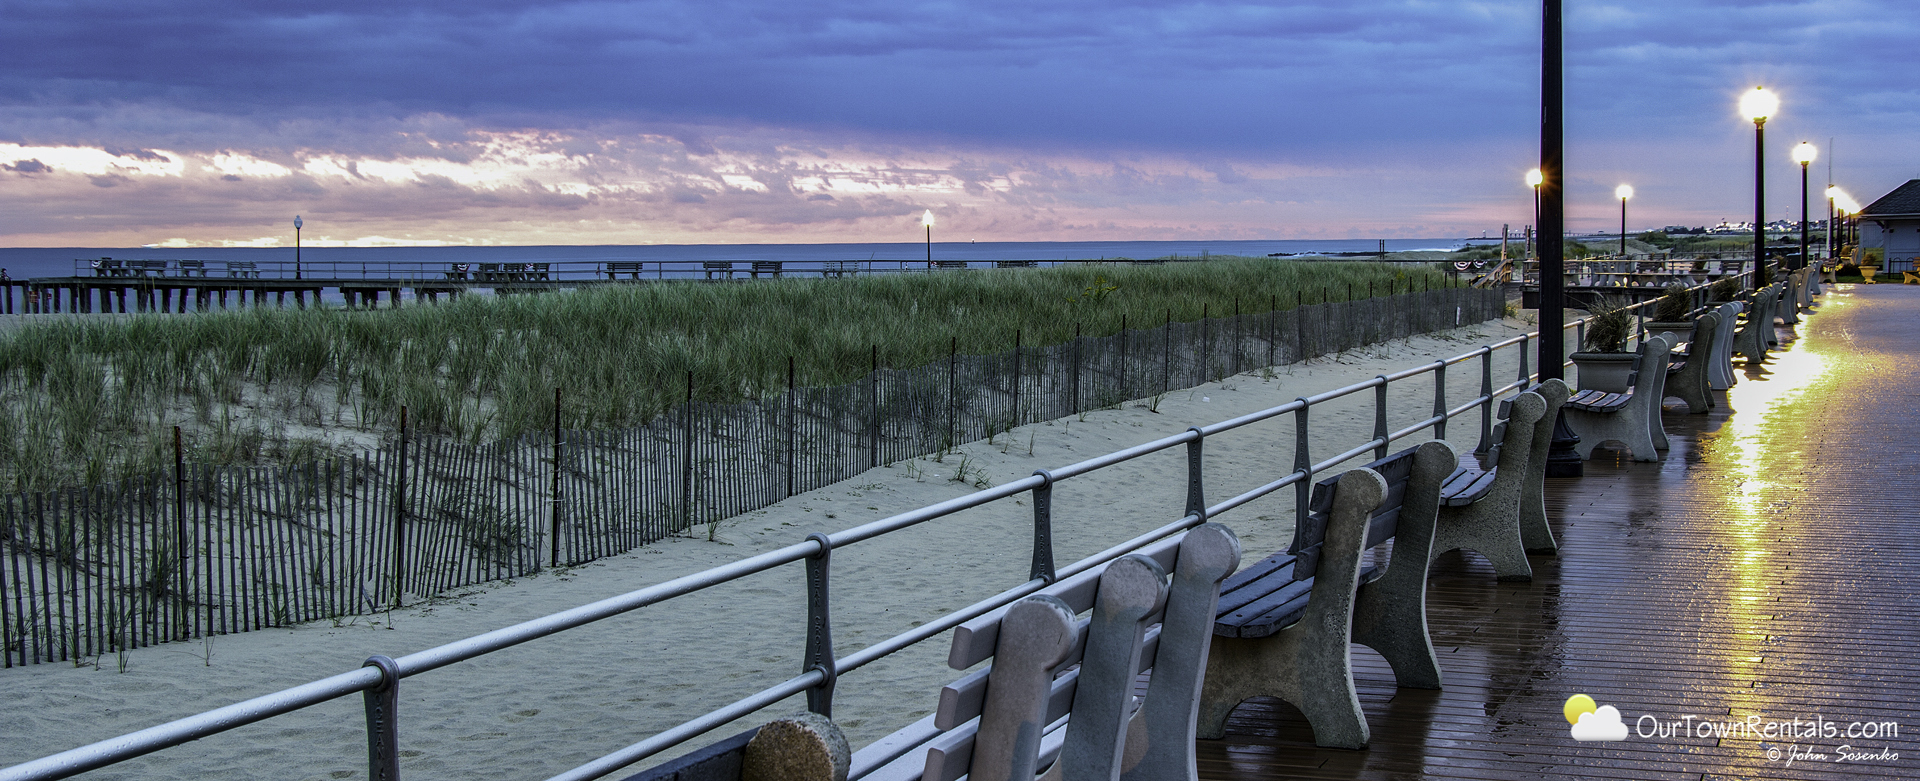 BOOK DIRECT & SAVE - NO COMMISSIONS! - NO BOOKING FEES!- JERSEY SHORE VACATION RENTALS